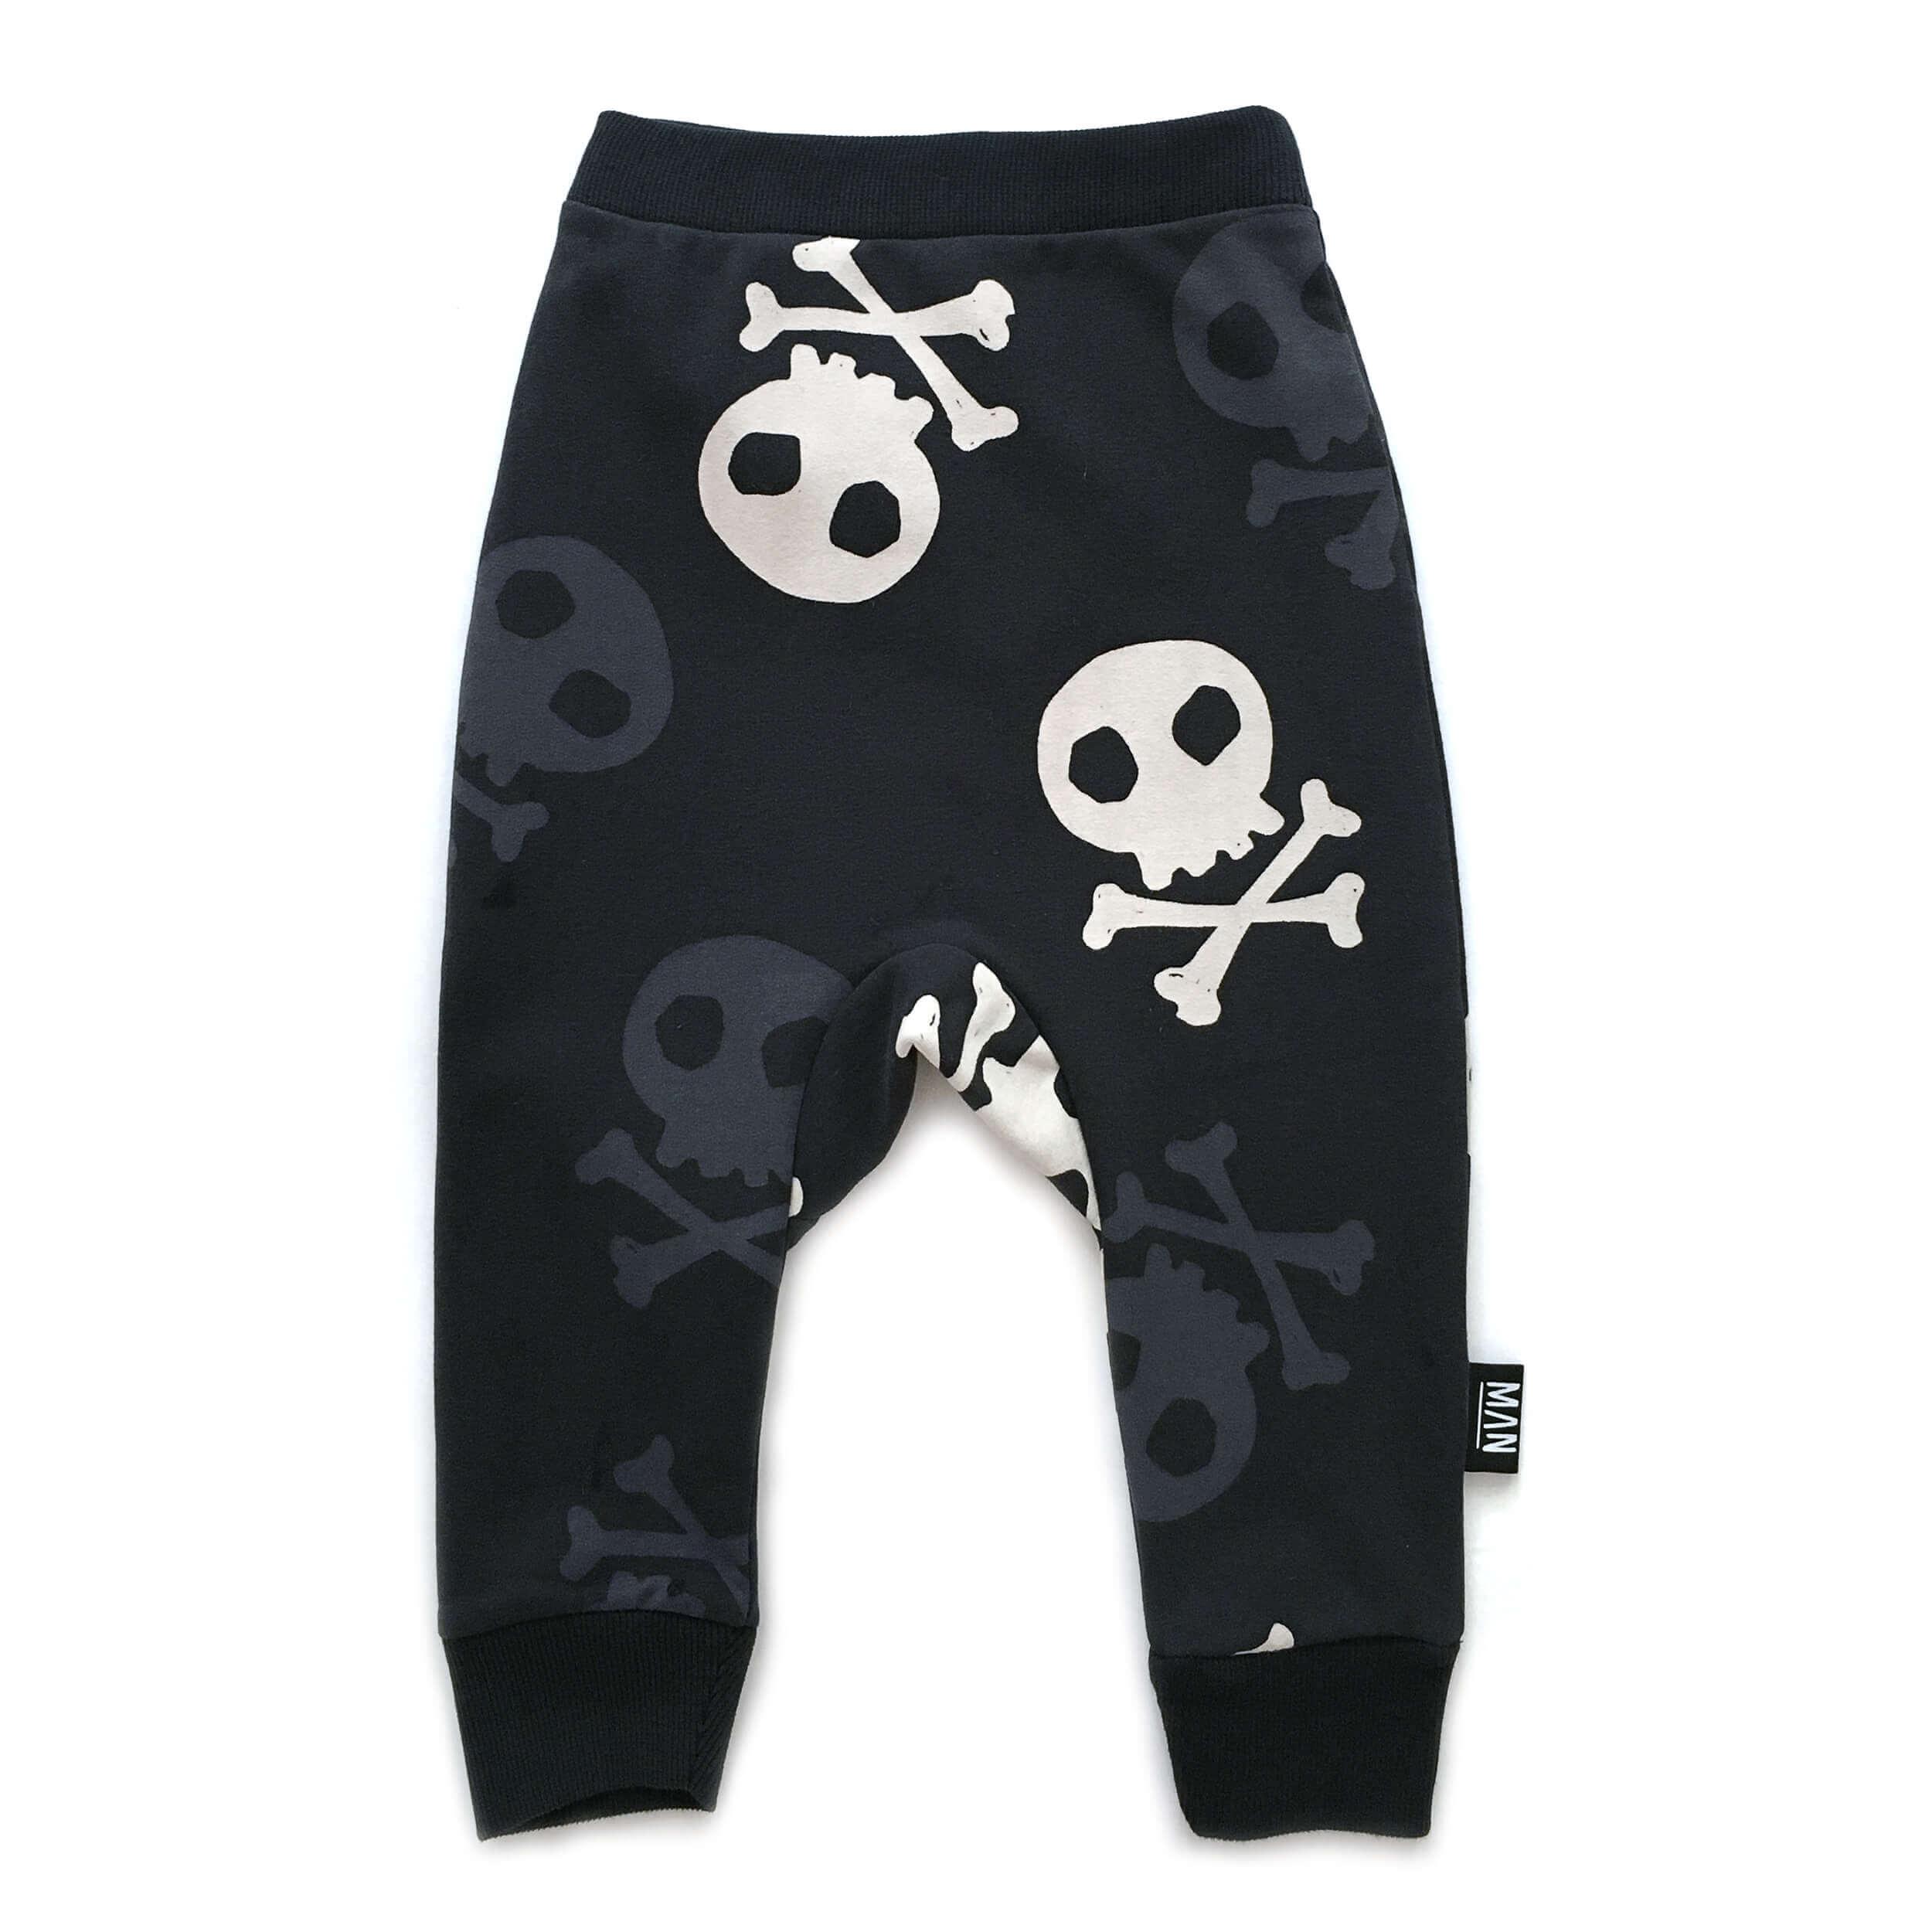 unisex children pants